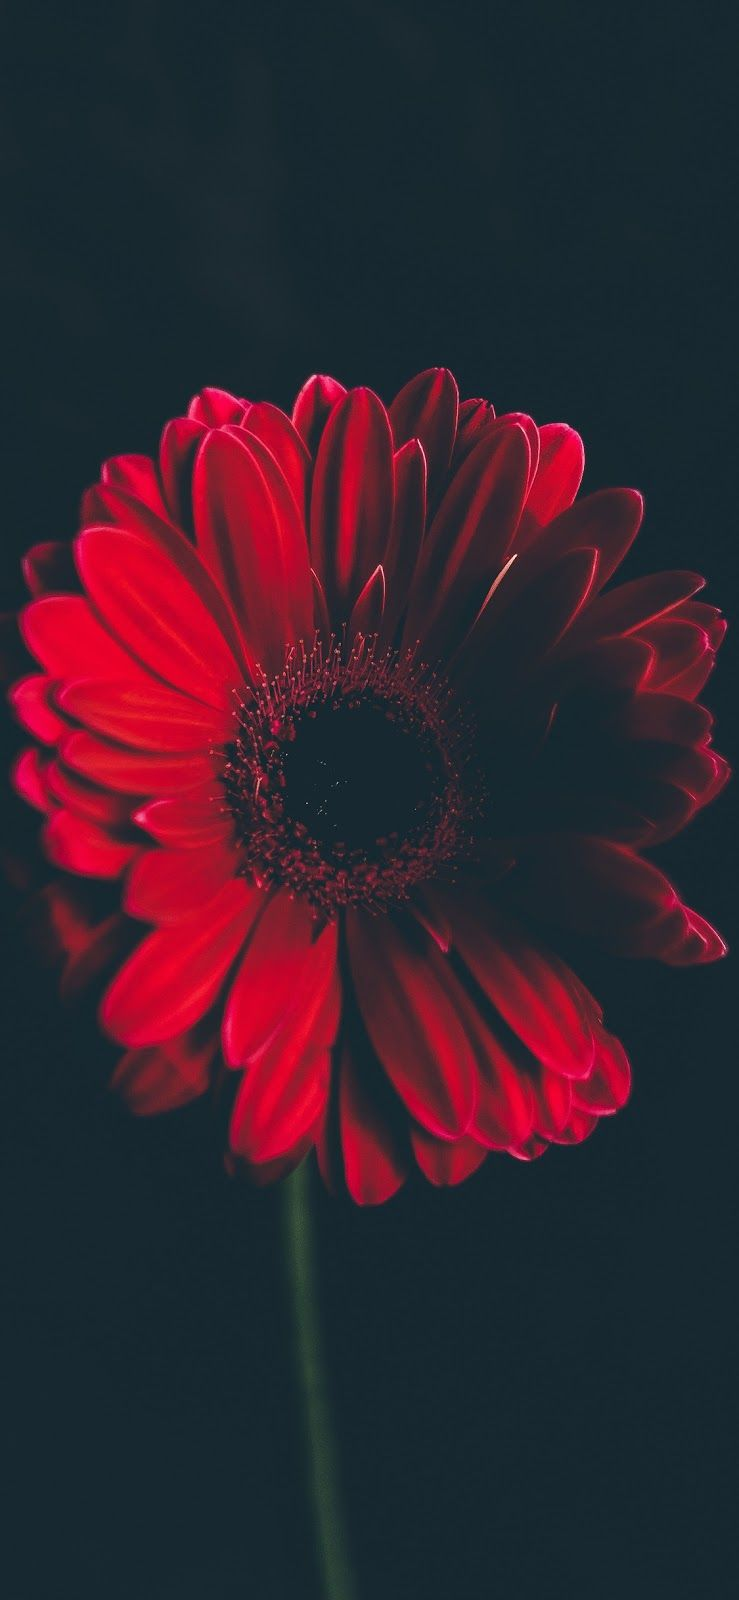 Red Flower Iphone X Wallpaper Iphone Android Background Followme Flower Iphone Wallpaper Red Flower Wallpaper Iphone Background Red